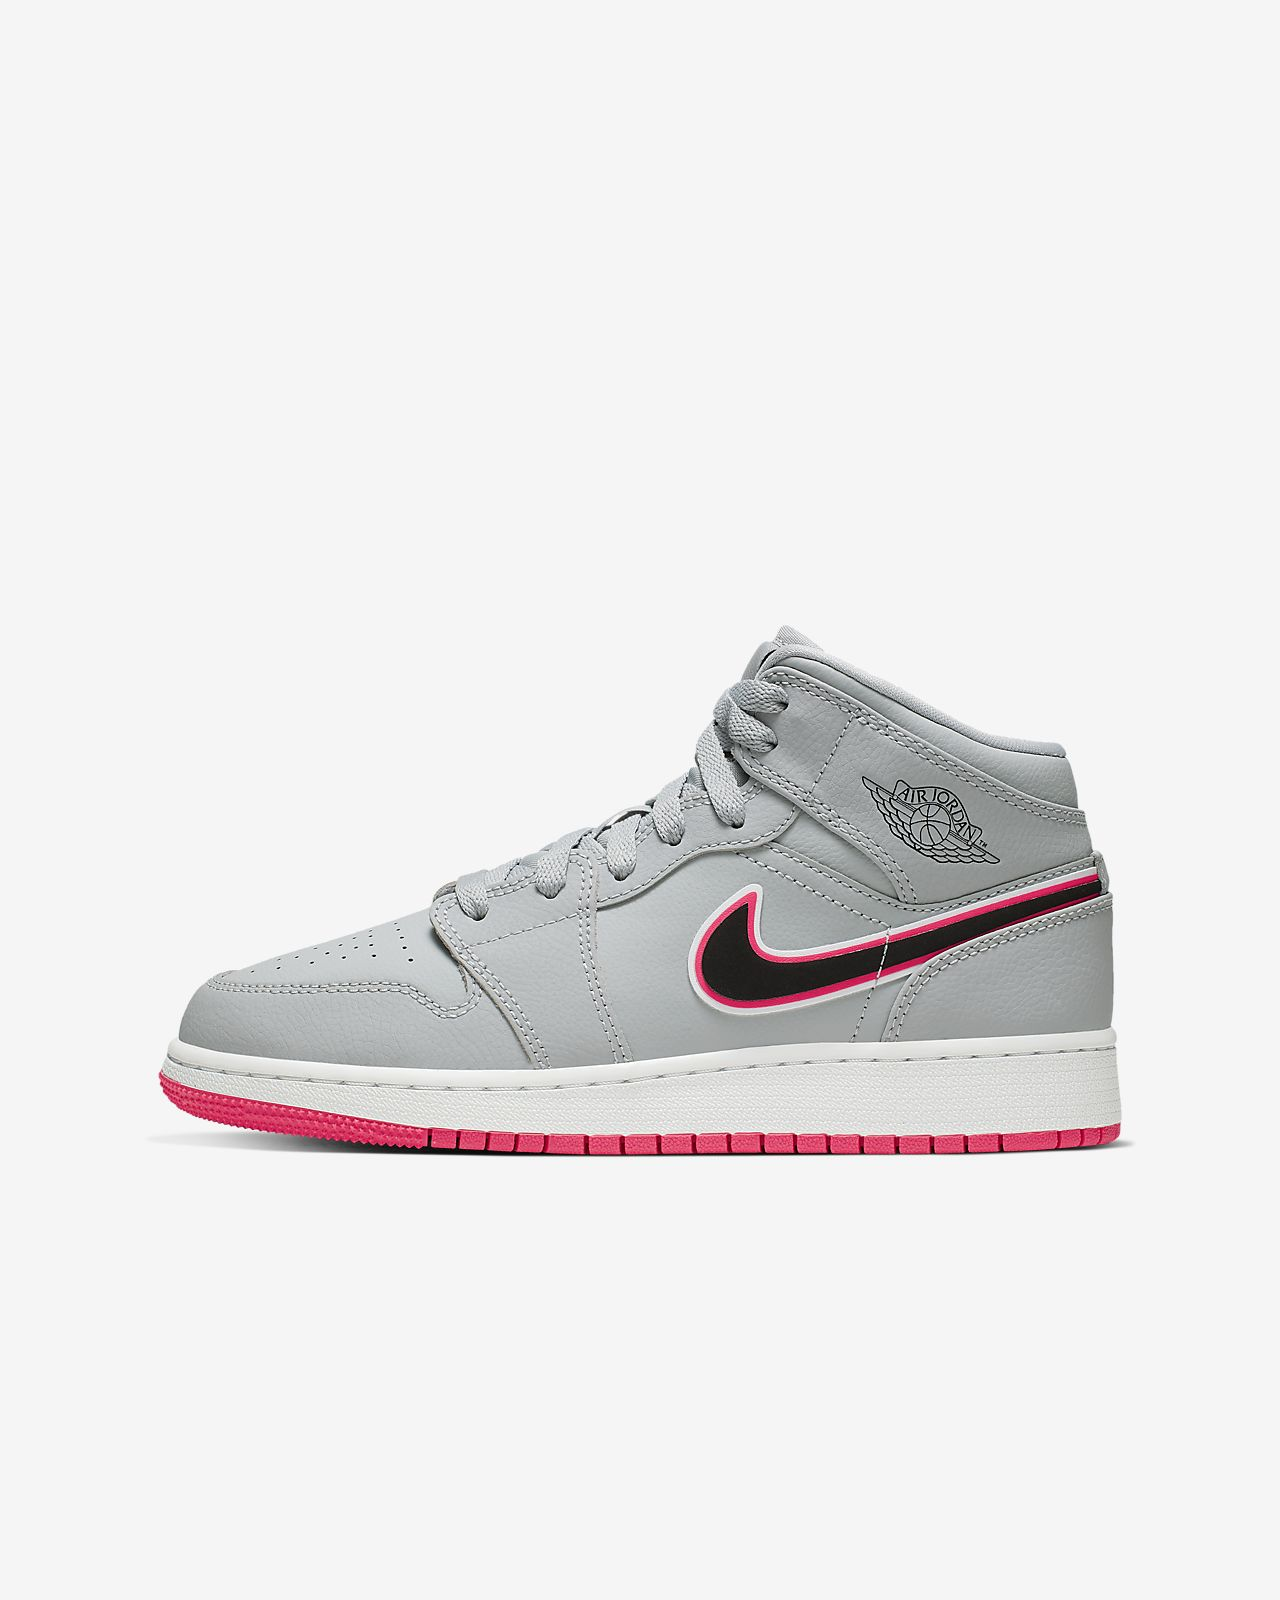 low priced 1cb79 fcb1c Air Jordan 1 Mid Big Kids' Shoe